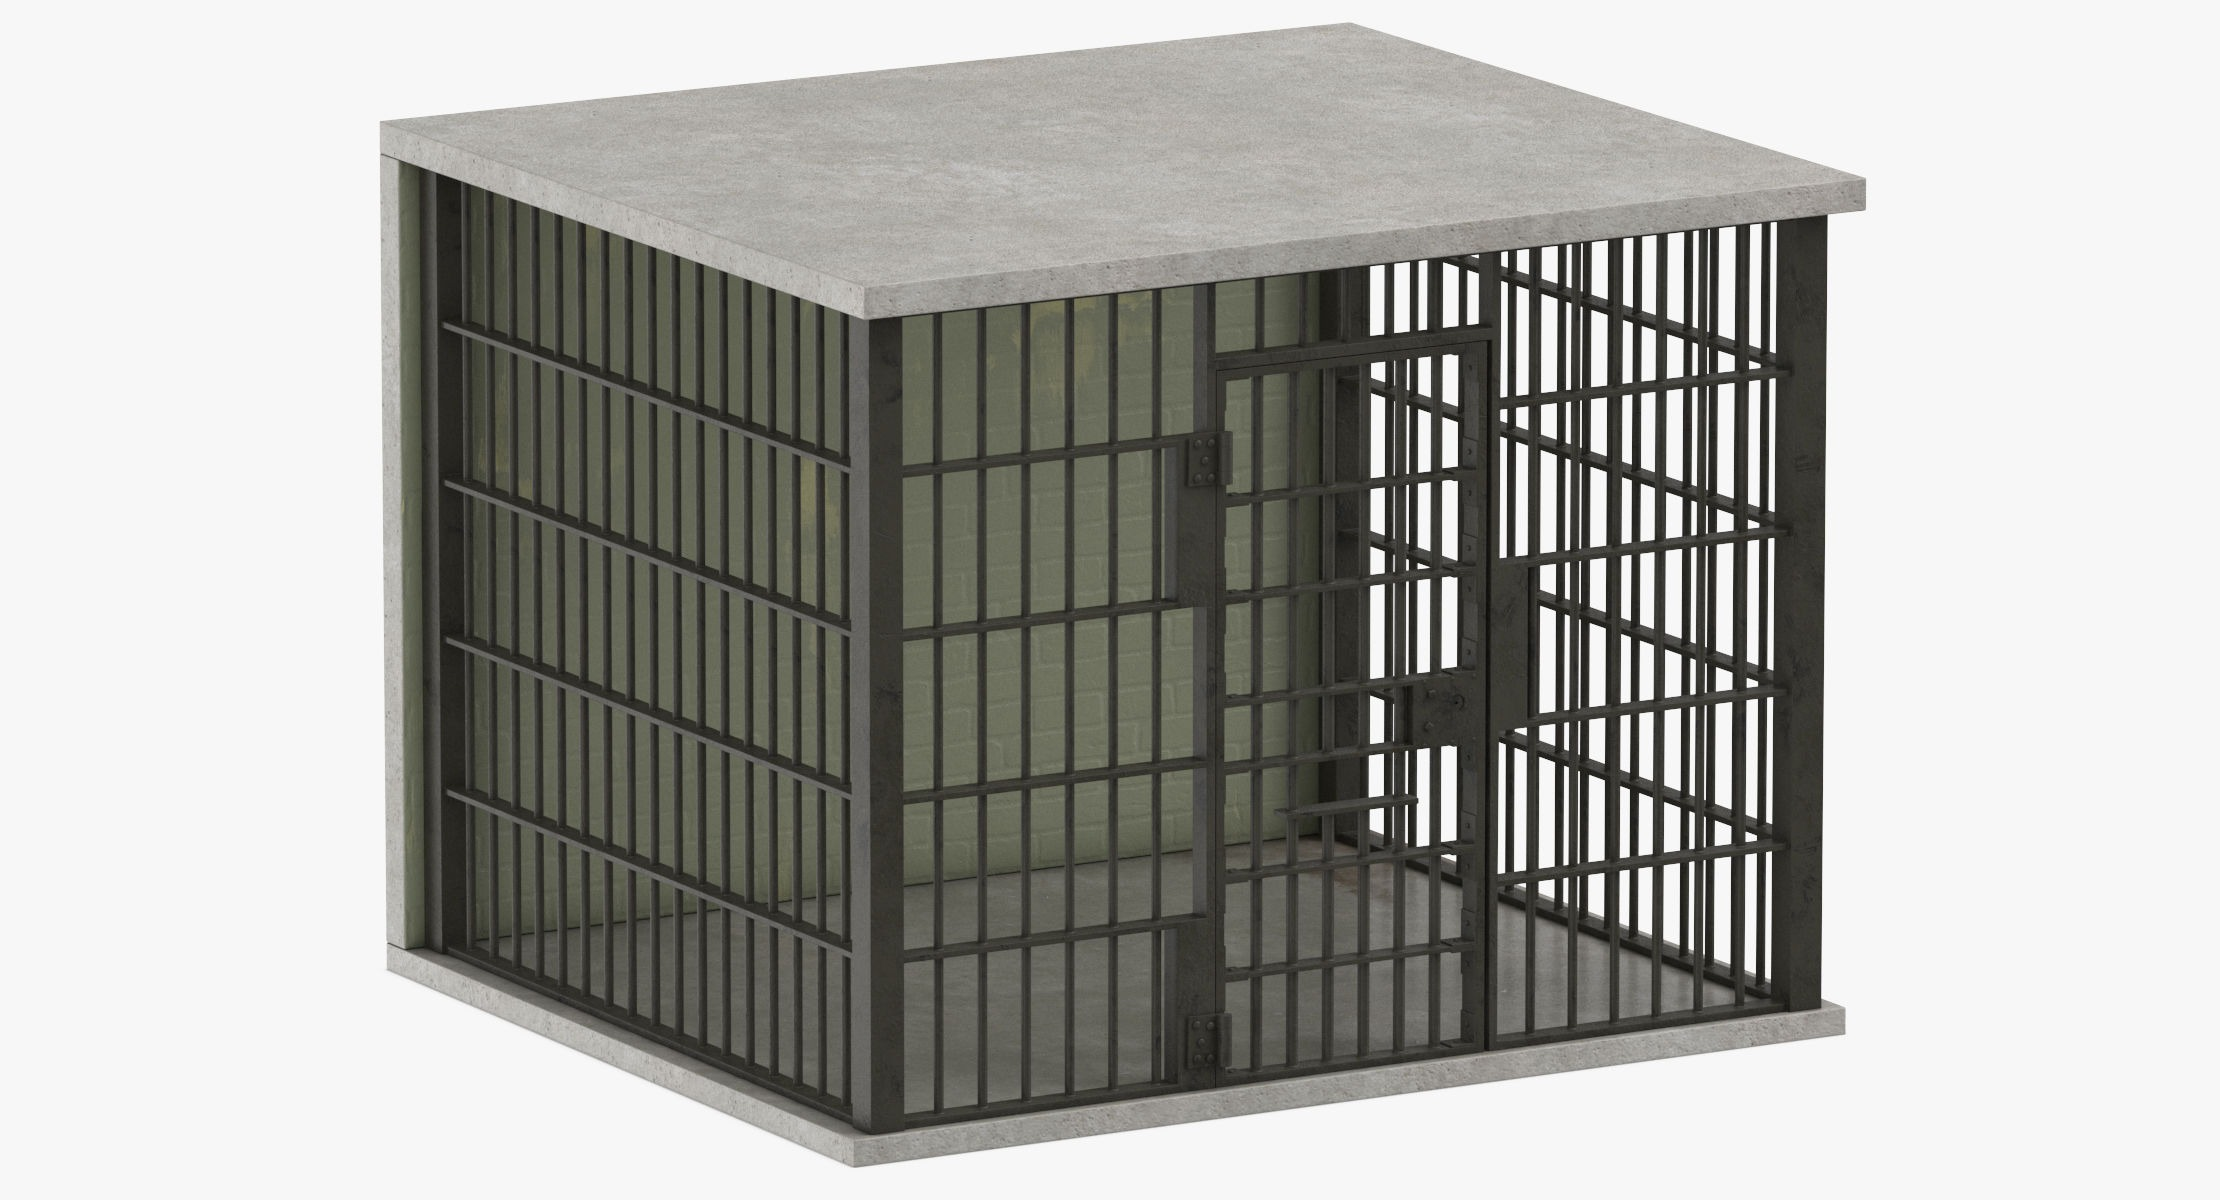 Empty Jail Cell - reel 1